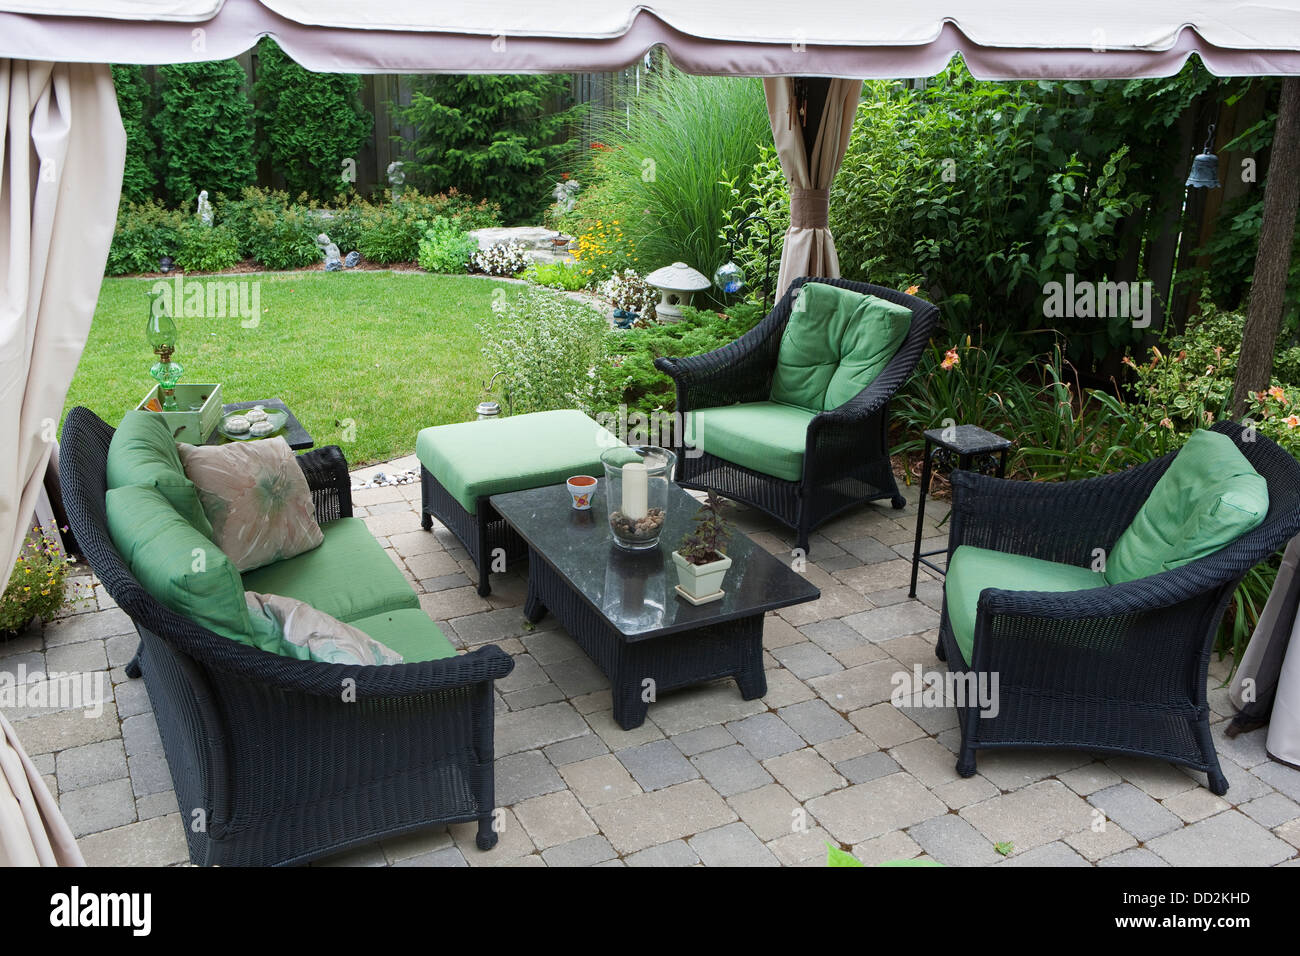 Furniture stores in burlington ontario canada - Covered Patio Furniture On Stone Patio In A Backyard Burlington Ontario Canada